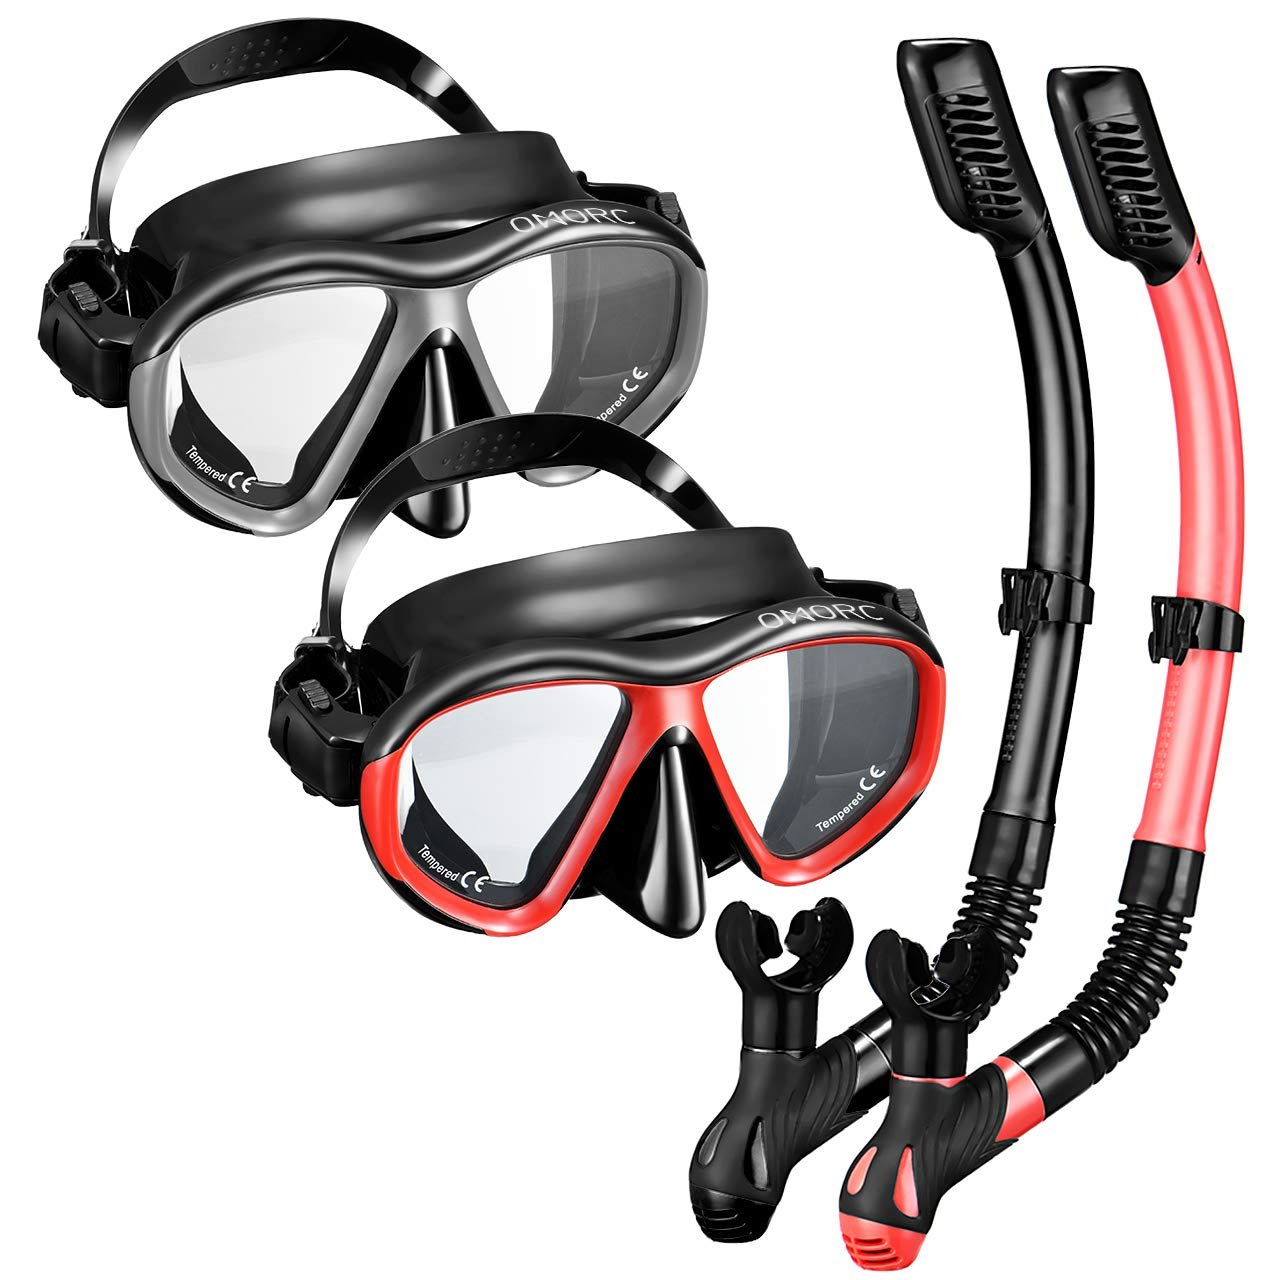 OMORC Snorkel Set, Anti-Fog Snorkel Mask Impact Resistant Panoramic Tempered Glass, Free Breathing Anti-Leak Dry Top Snorkel, Professional Snorkeling Set Adult Youth by OMORC